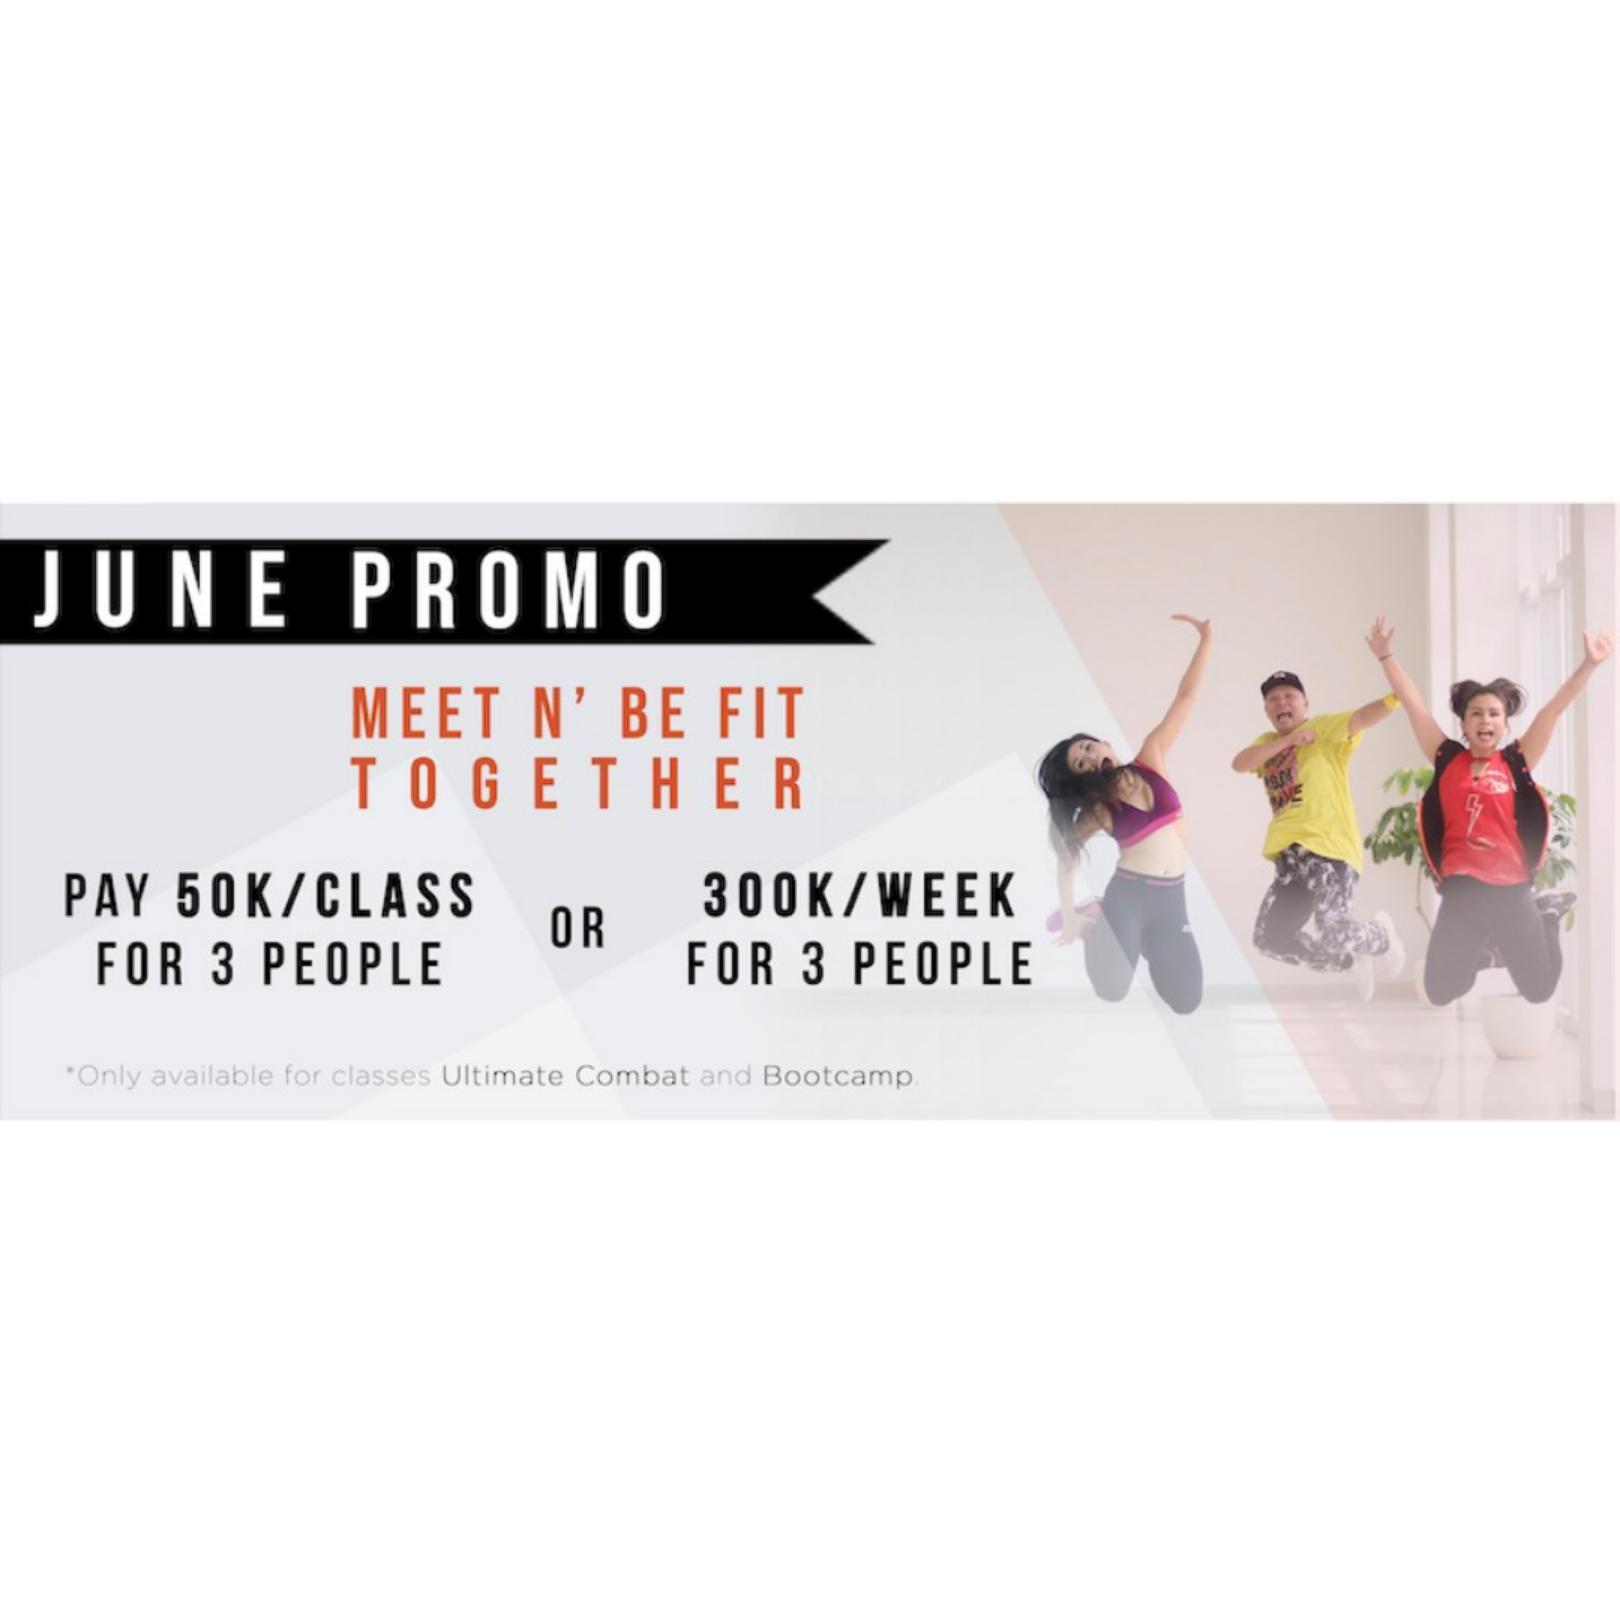 June Promo Pay 50K/Class For 3 People